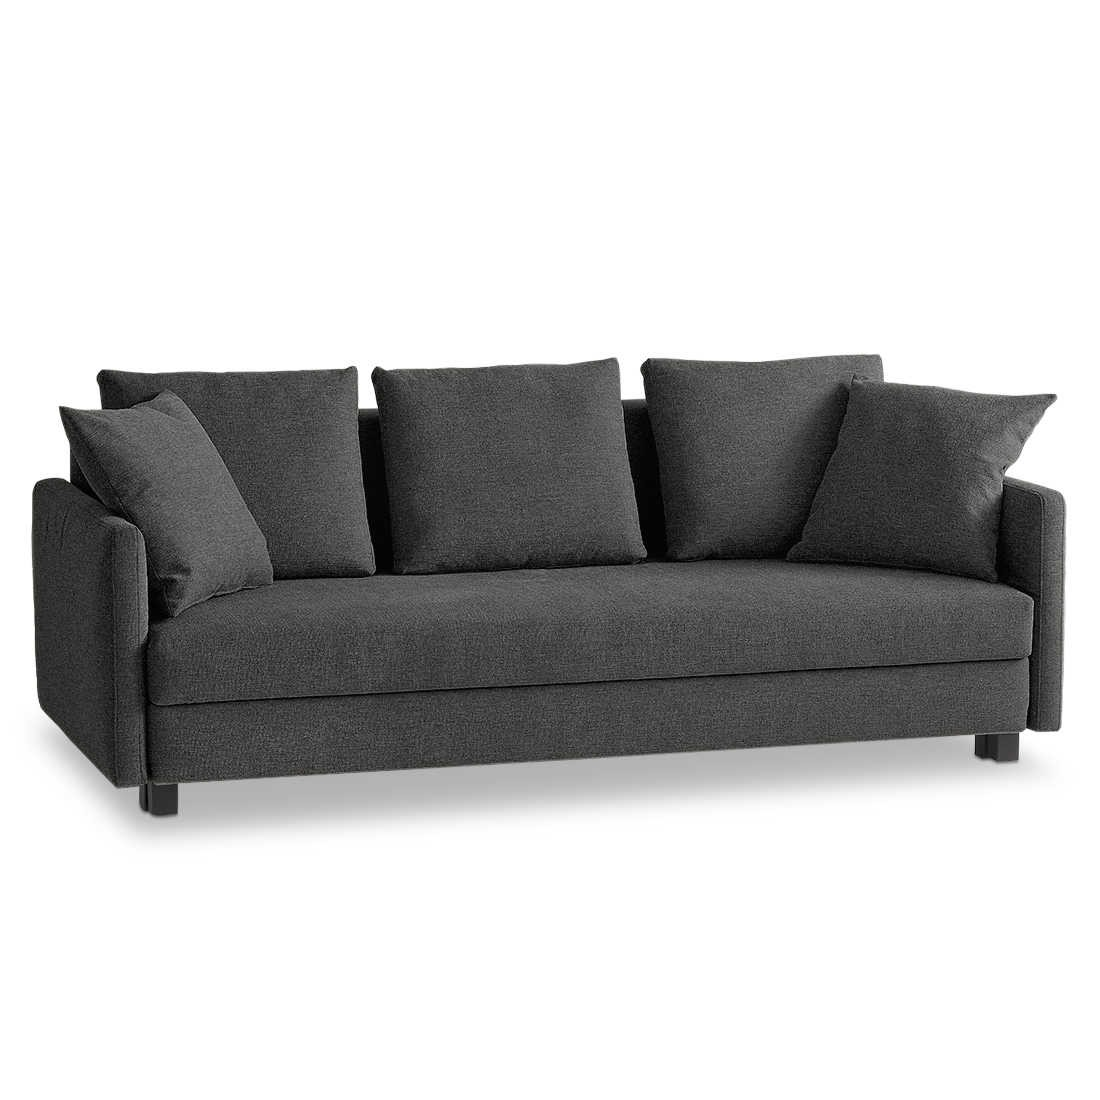 franz fertig schlafsofa jester grau stoff online kaufen bei woonio. Black Bedroom Furniture Sets. Home Design Ideas